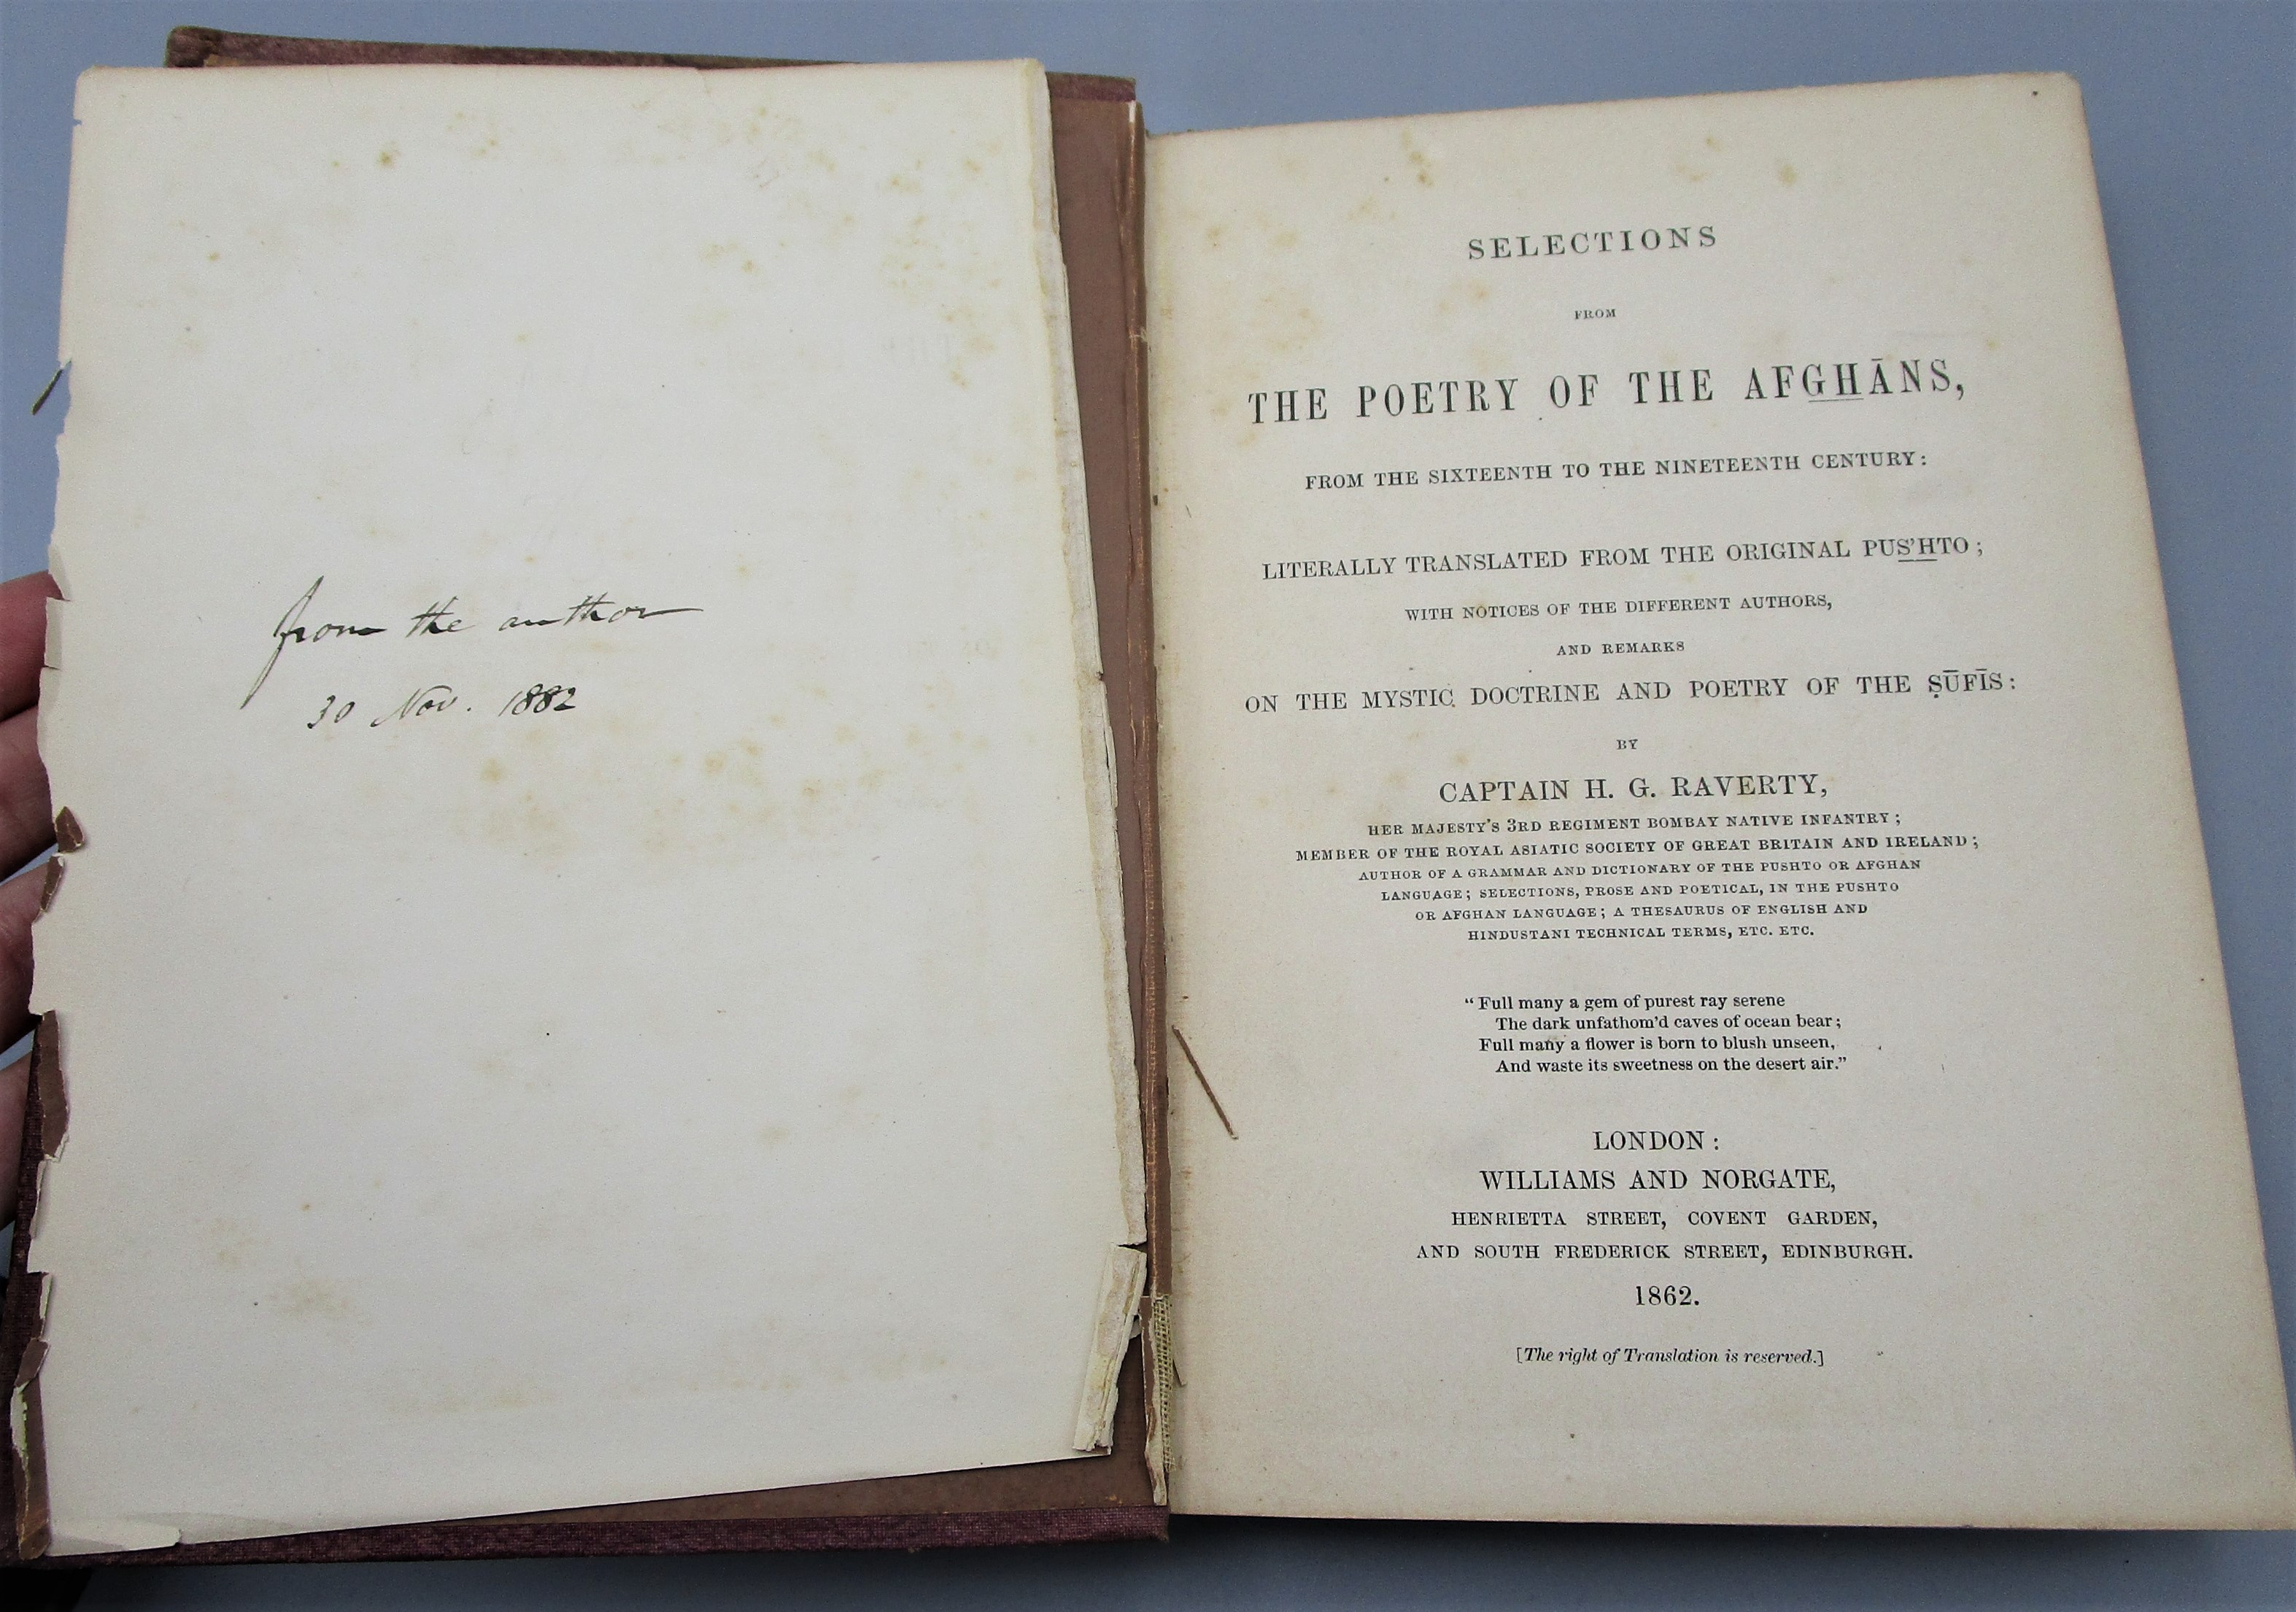 SELECTIONS FROM THE POETRY OF THE AFGHANS, by H. G. Raverty - 1862 First Edition